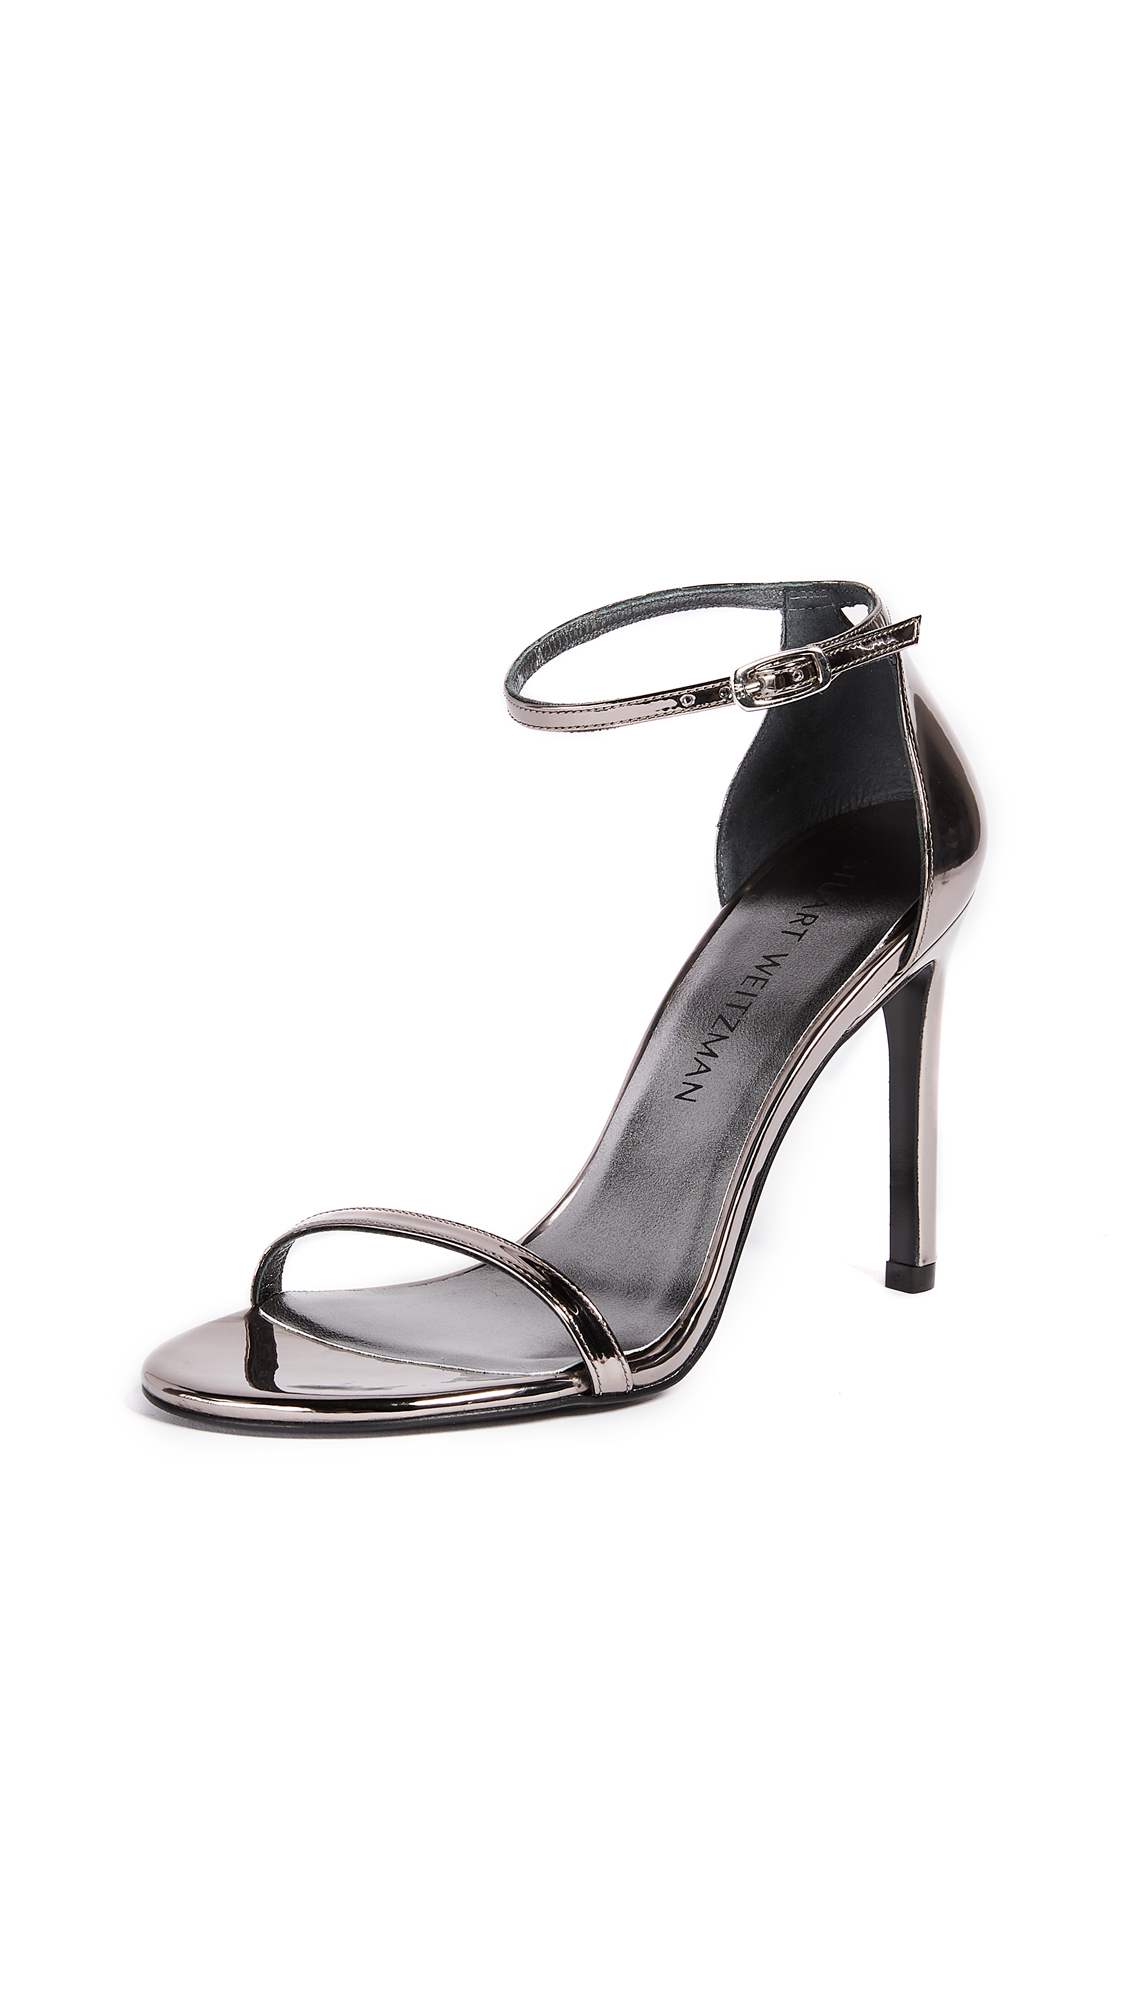 Stuart Weitzman Nudistsong 100mm Sandals - Pewter